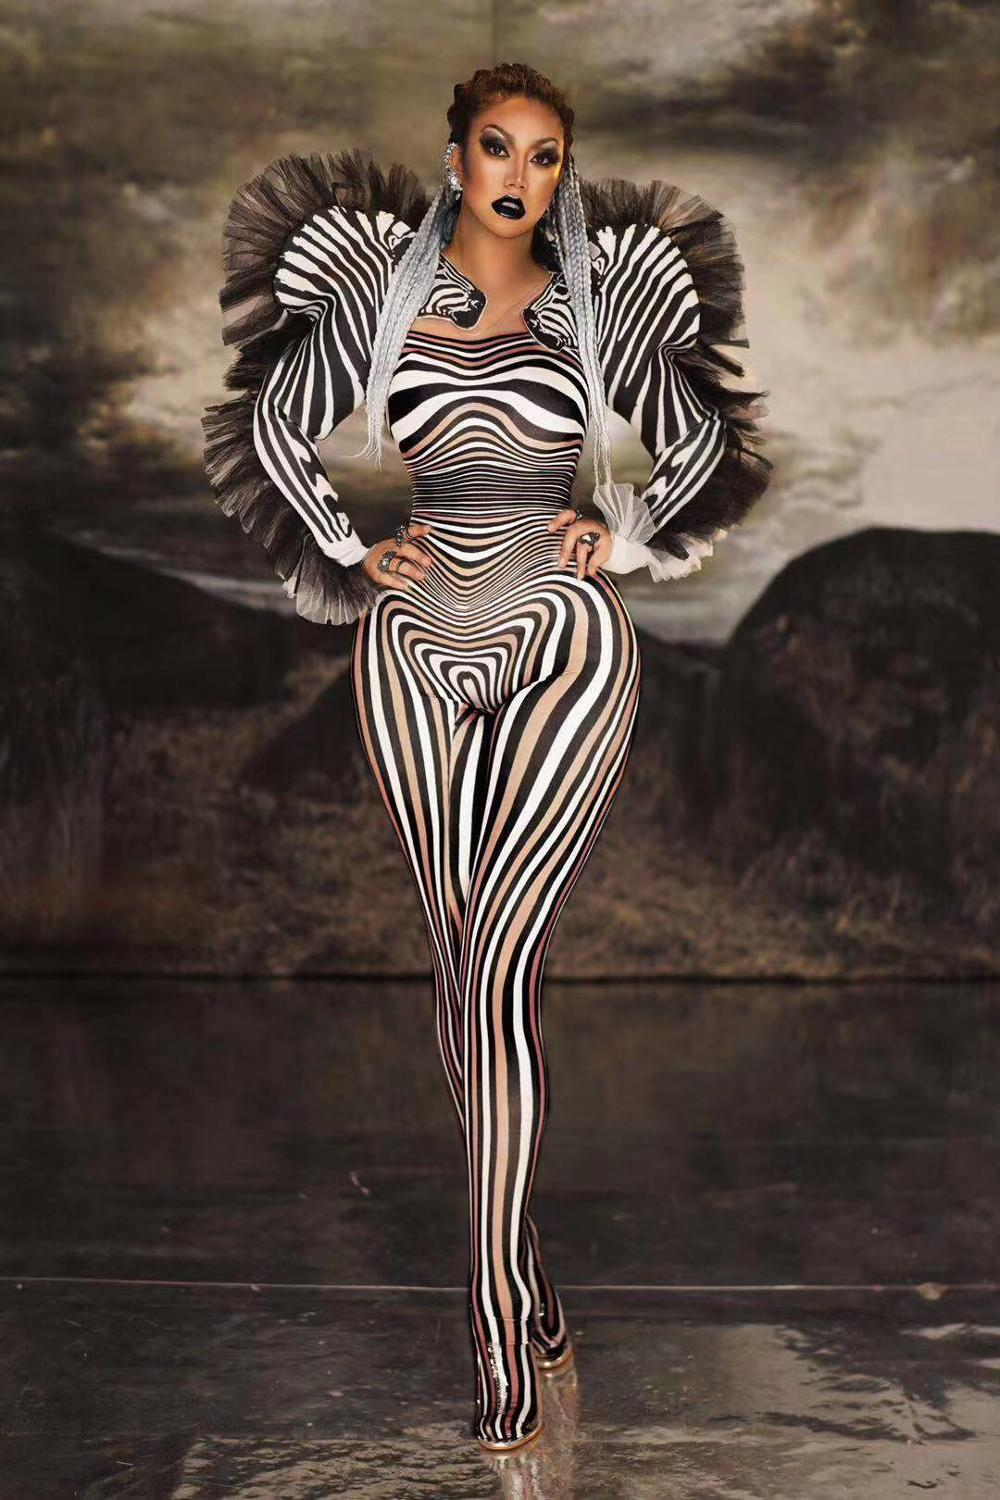 Women New Sexy Stage Zebra Pattern Jumpsuit Singer Sexy Stage Outfit Bar DS Dance Cosplay Bodysuit Costume Prom Costume